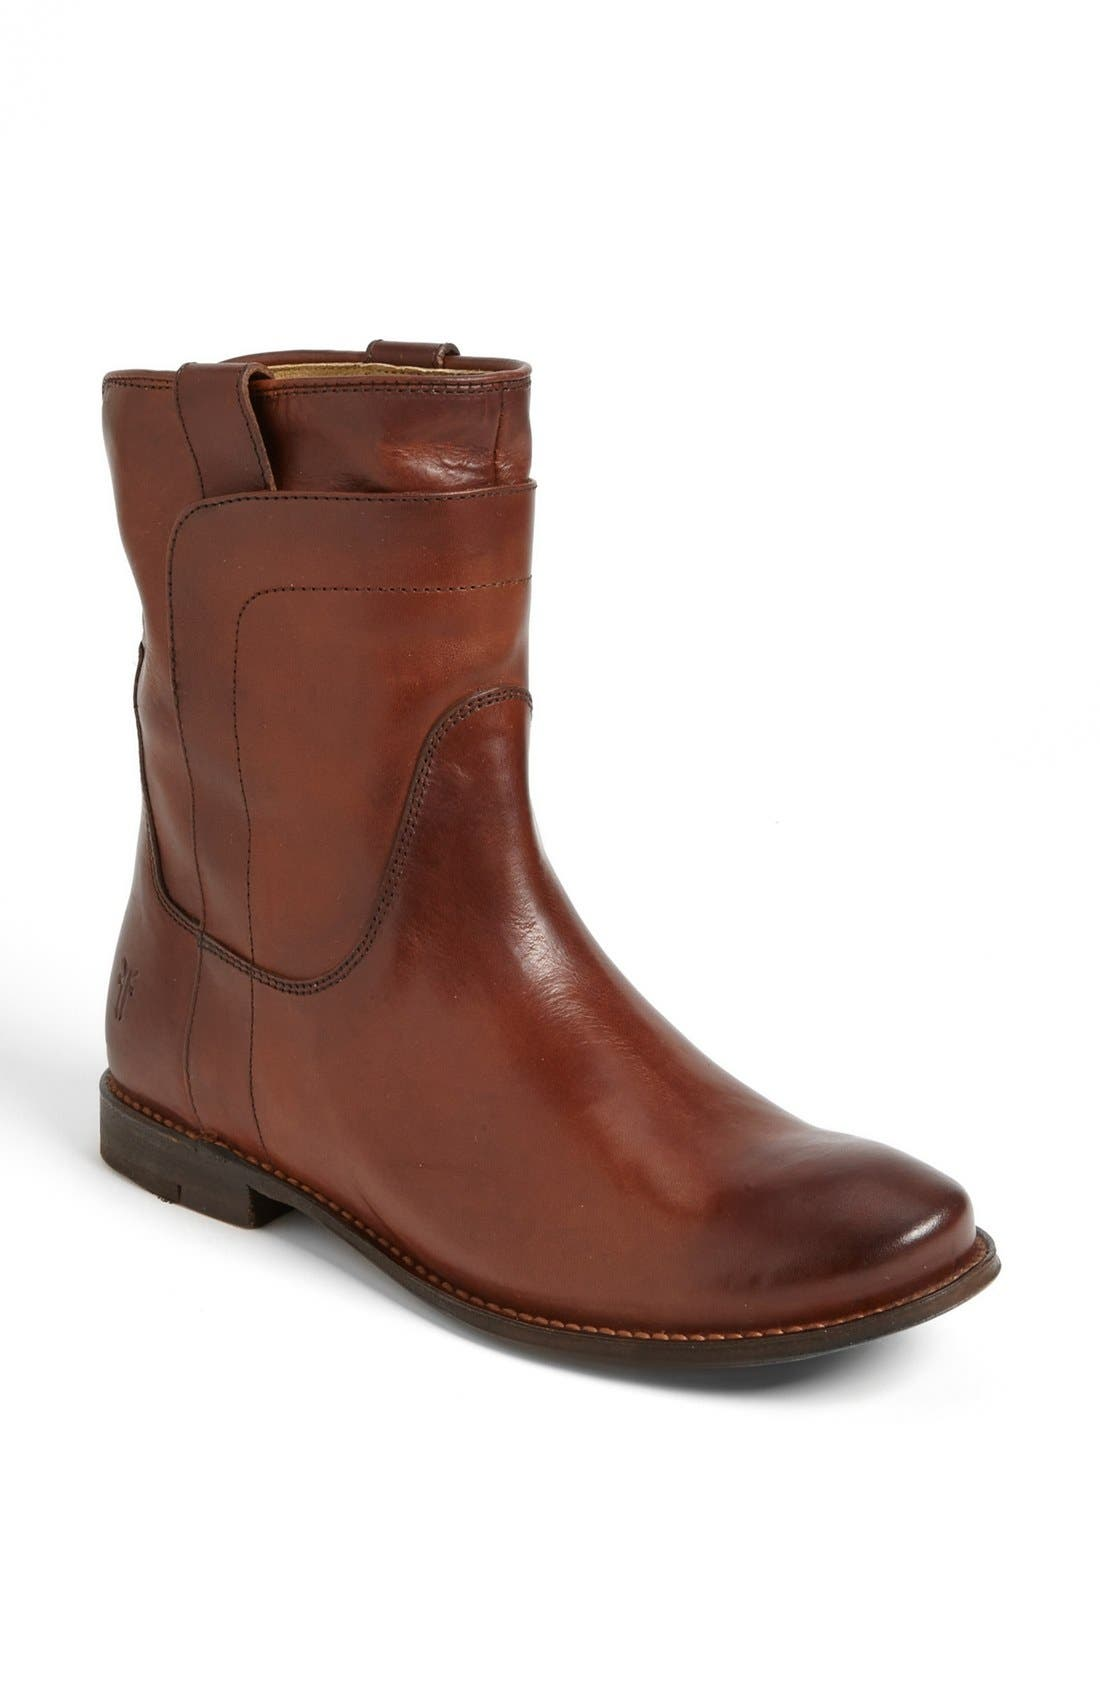 Alternate Image 1 Selected - Frye 'Paige' Short Boot